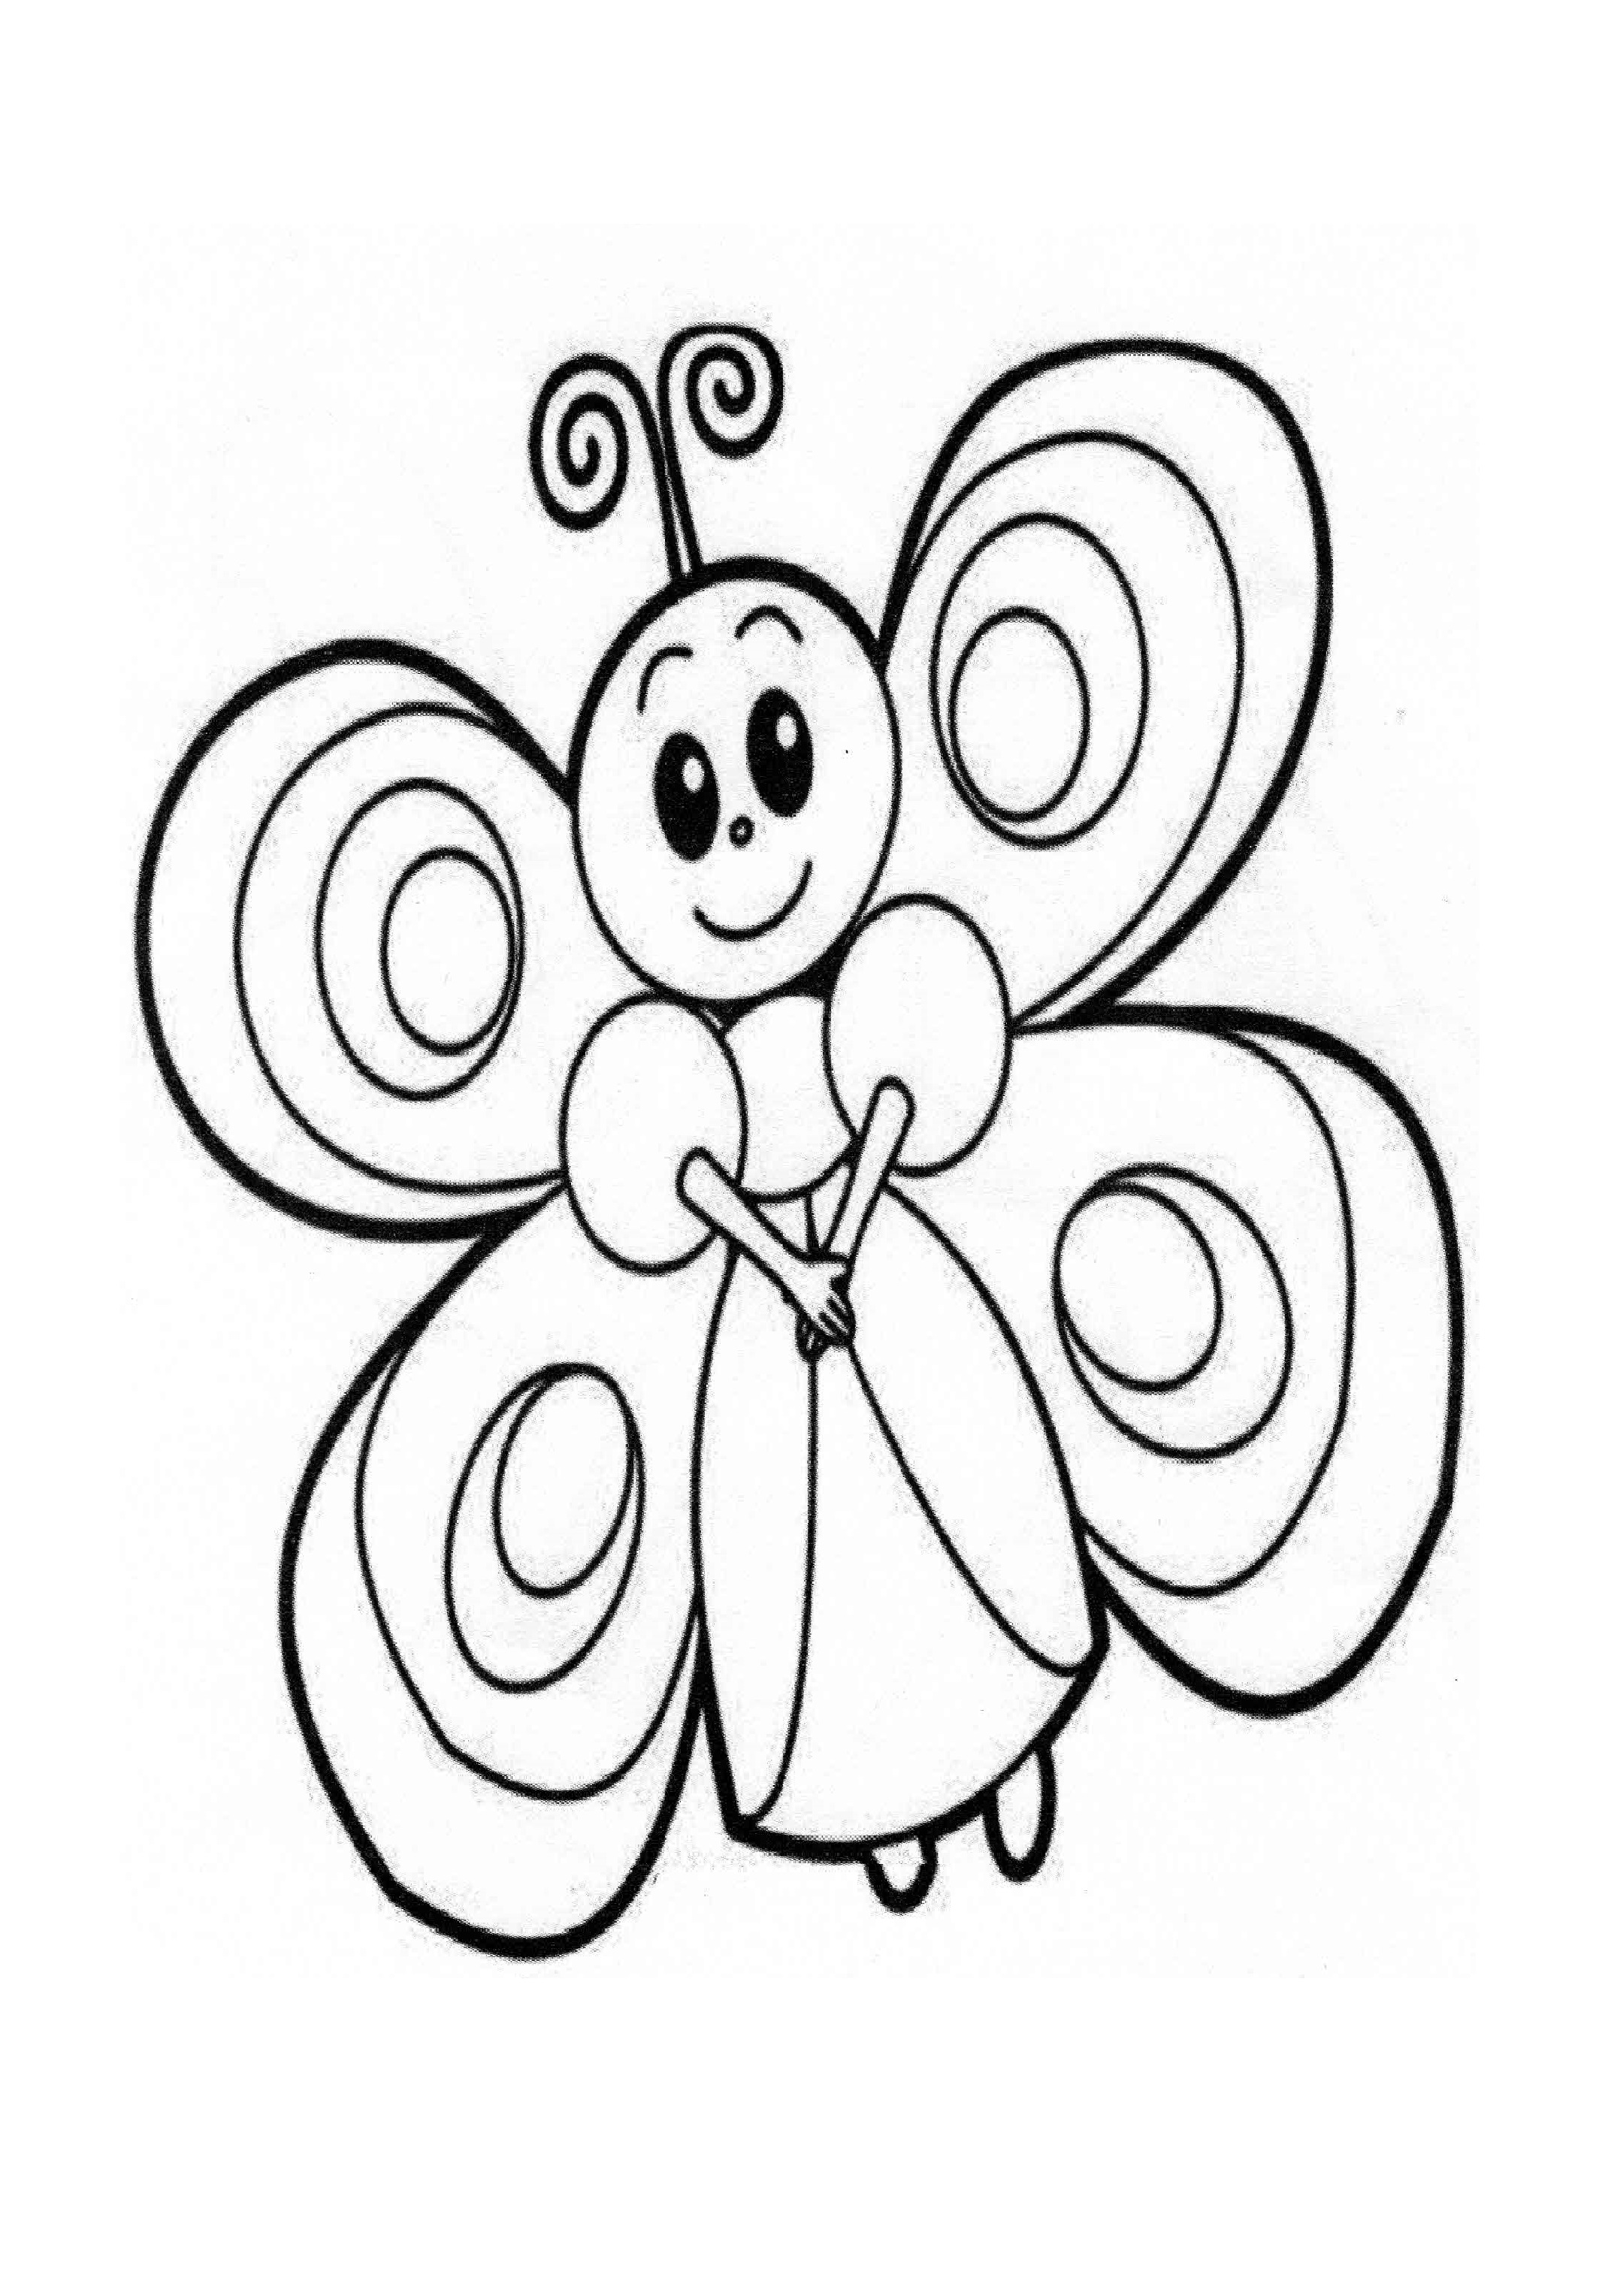 small butterfly coloring pages big image monarch butterfly coloring page free butterfly small coloring pages